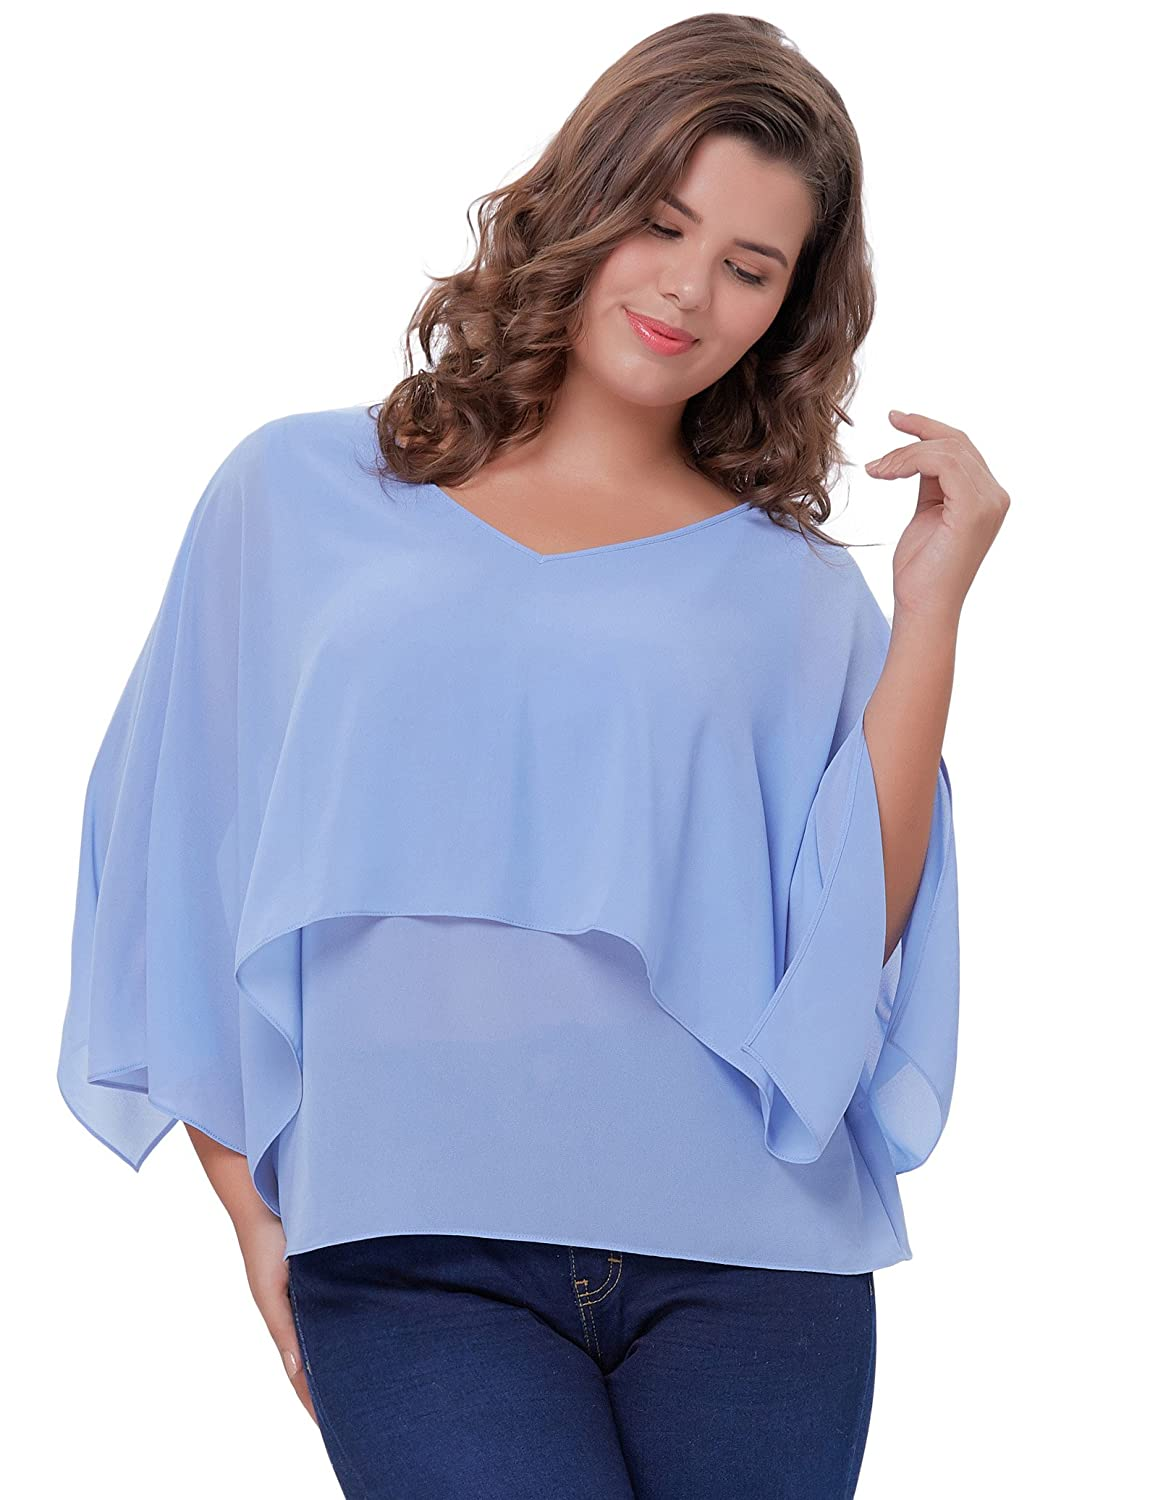 4a5e962c46eac3 Material: Chiffon V Neck, Open Sleeves(Short poncho batwing sleeve)  Cape-Like Design Light & Portable Hand Wash, Machine Washable, Do Not  Bleach, Hang Dry